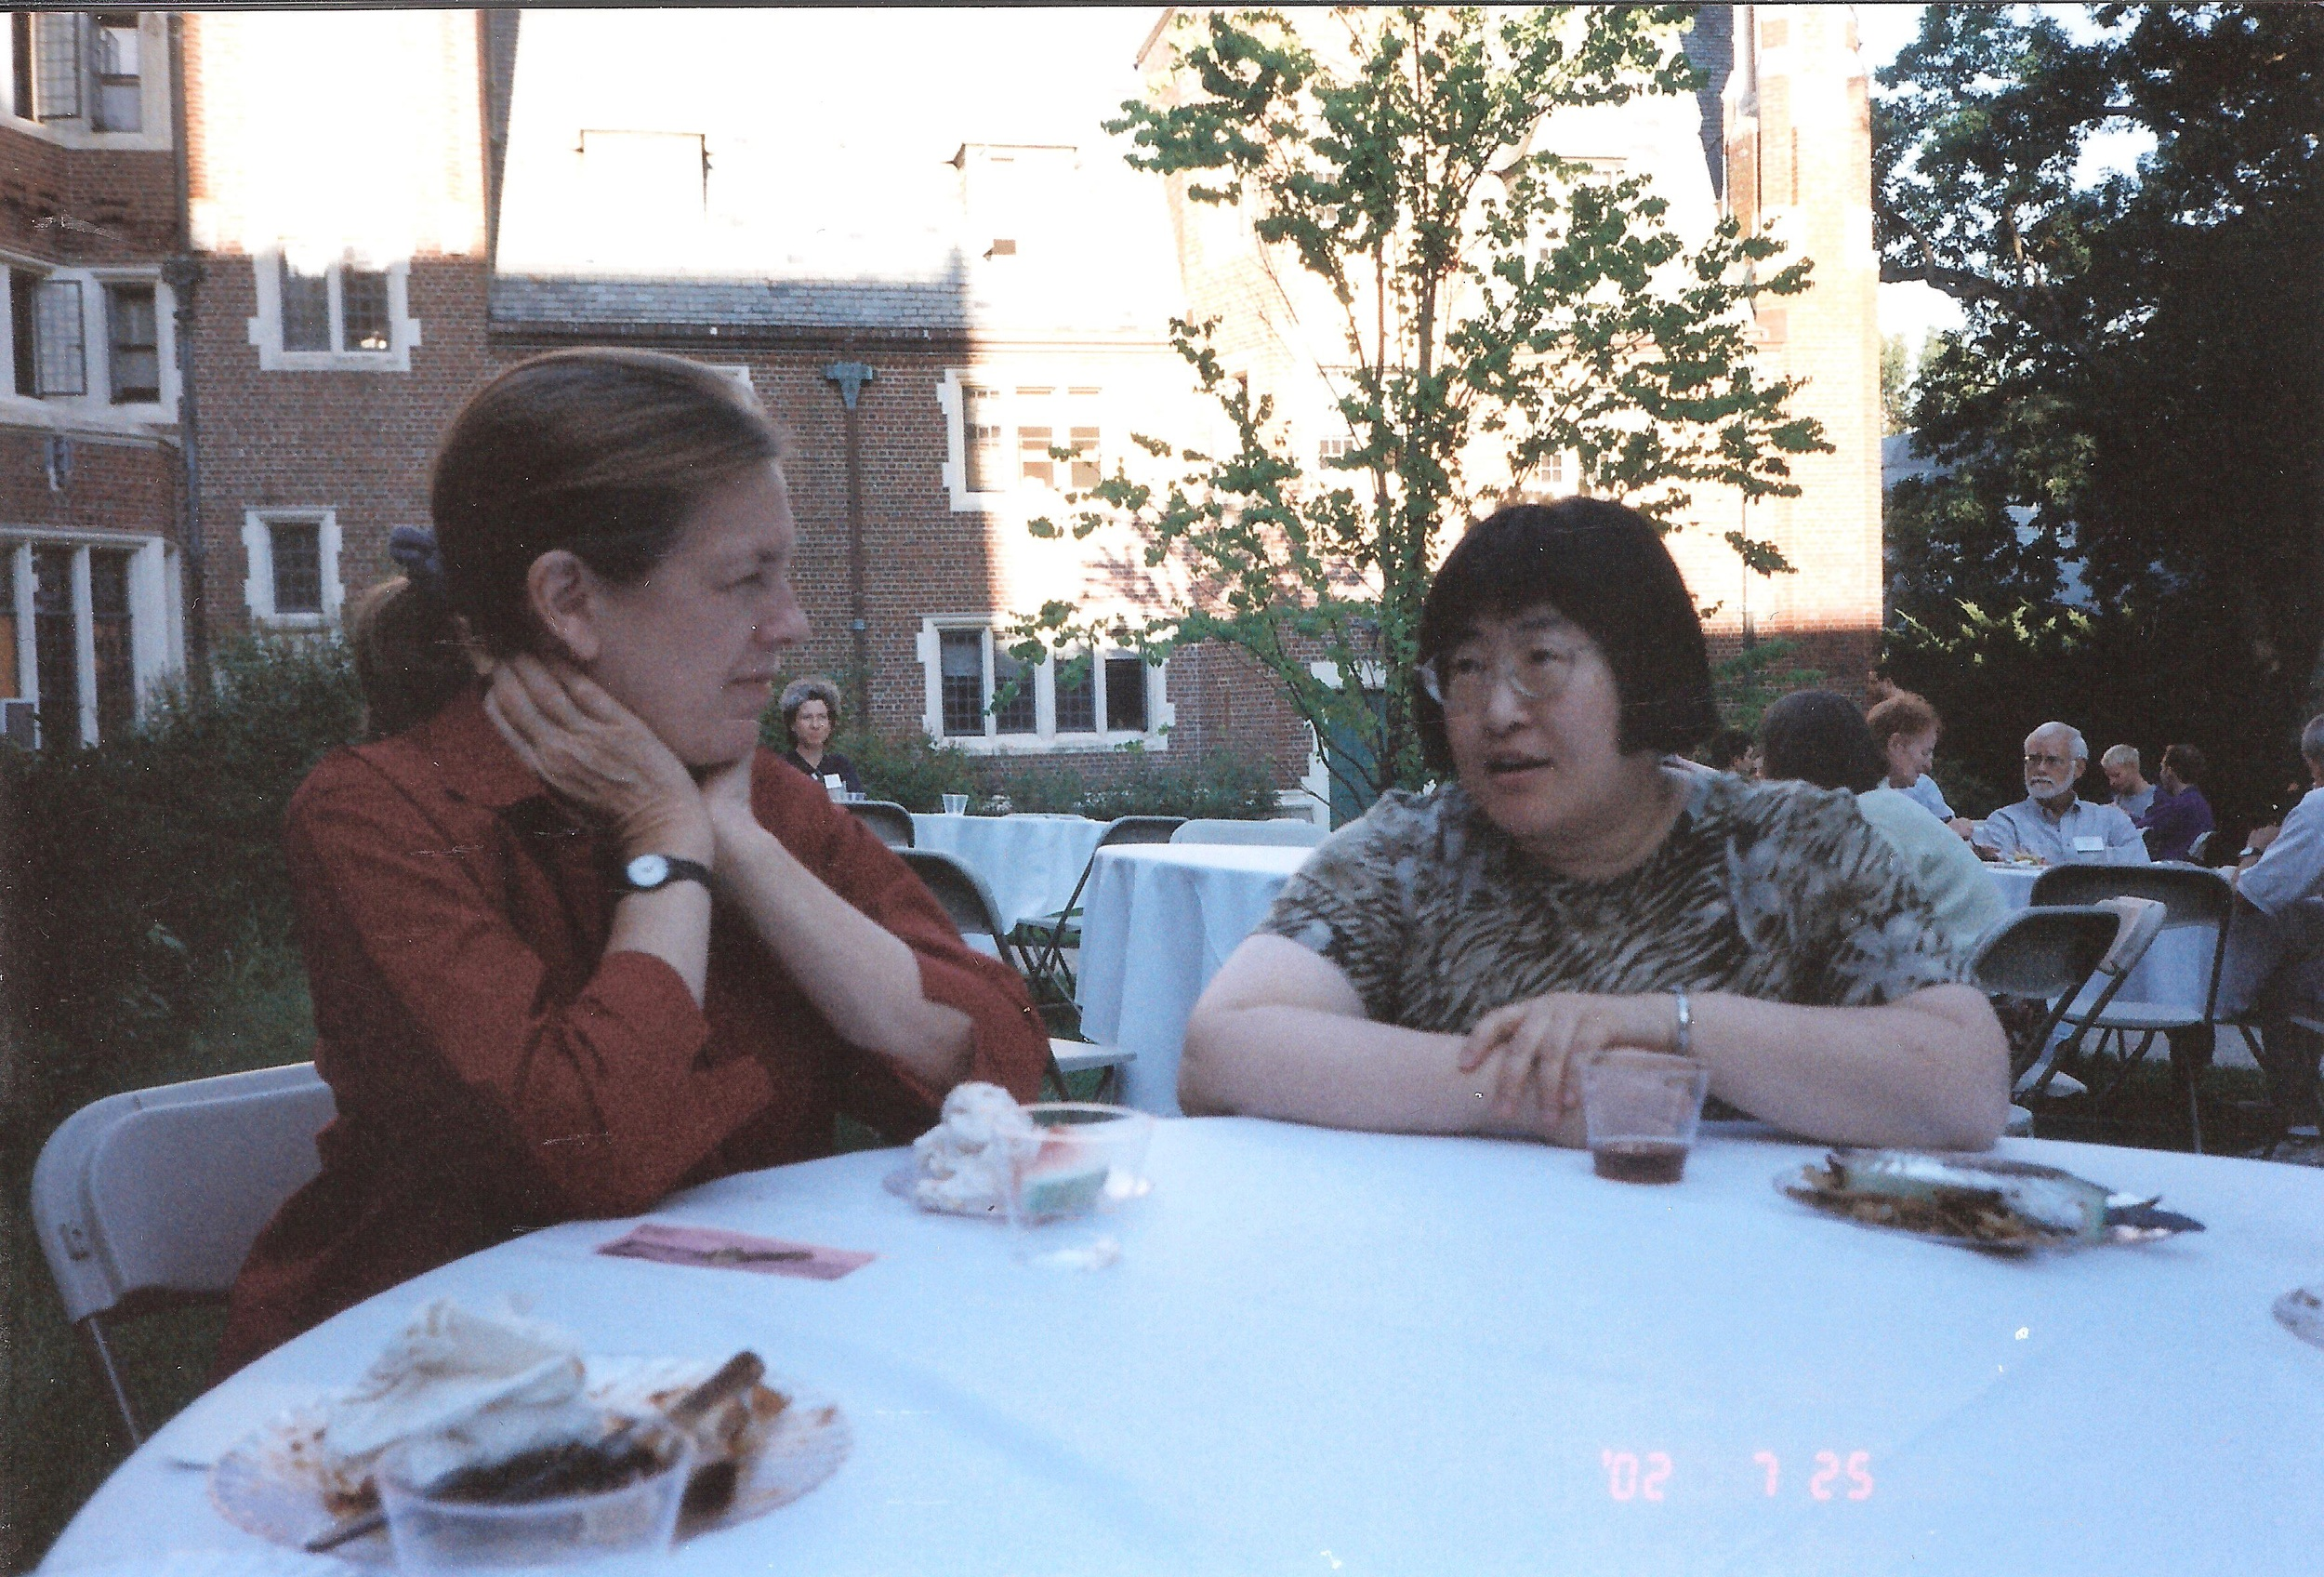 Margaret Brouwer and Chen Yi during their residency at University of Missouri Kansans City